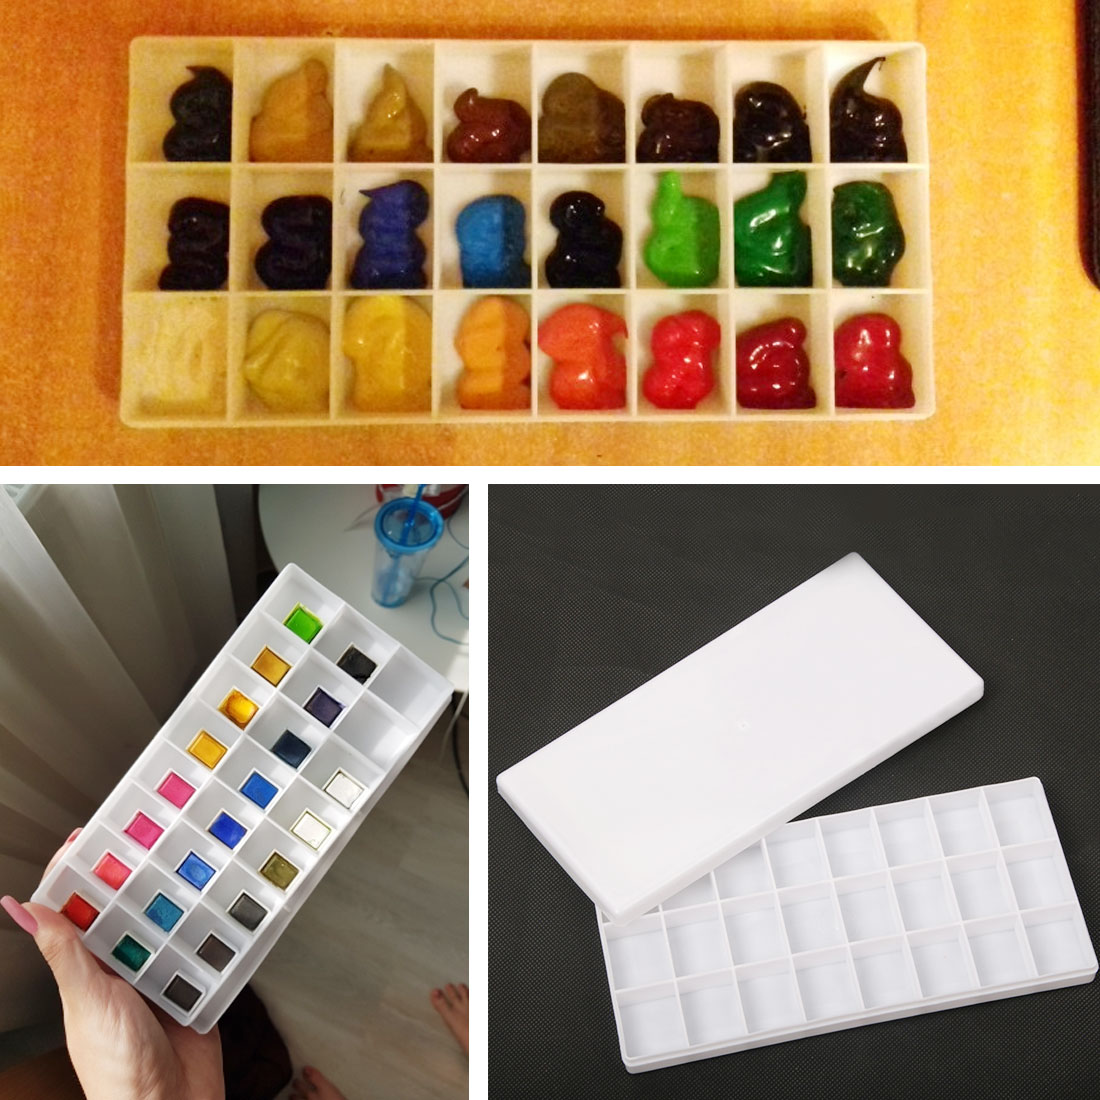 24 Grid color <font><b>Art</b></font> Palette Double Tray <font><b>Box</b></font> Drawing Painting Watercolor oil paint Pigment Glue Mixing Case Palettes <font><b>Tools</b></font> image